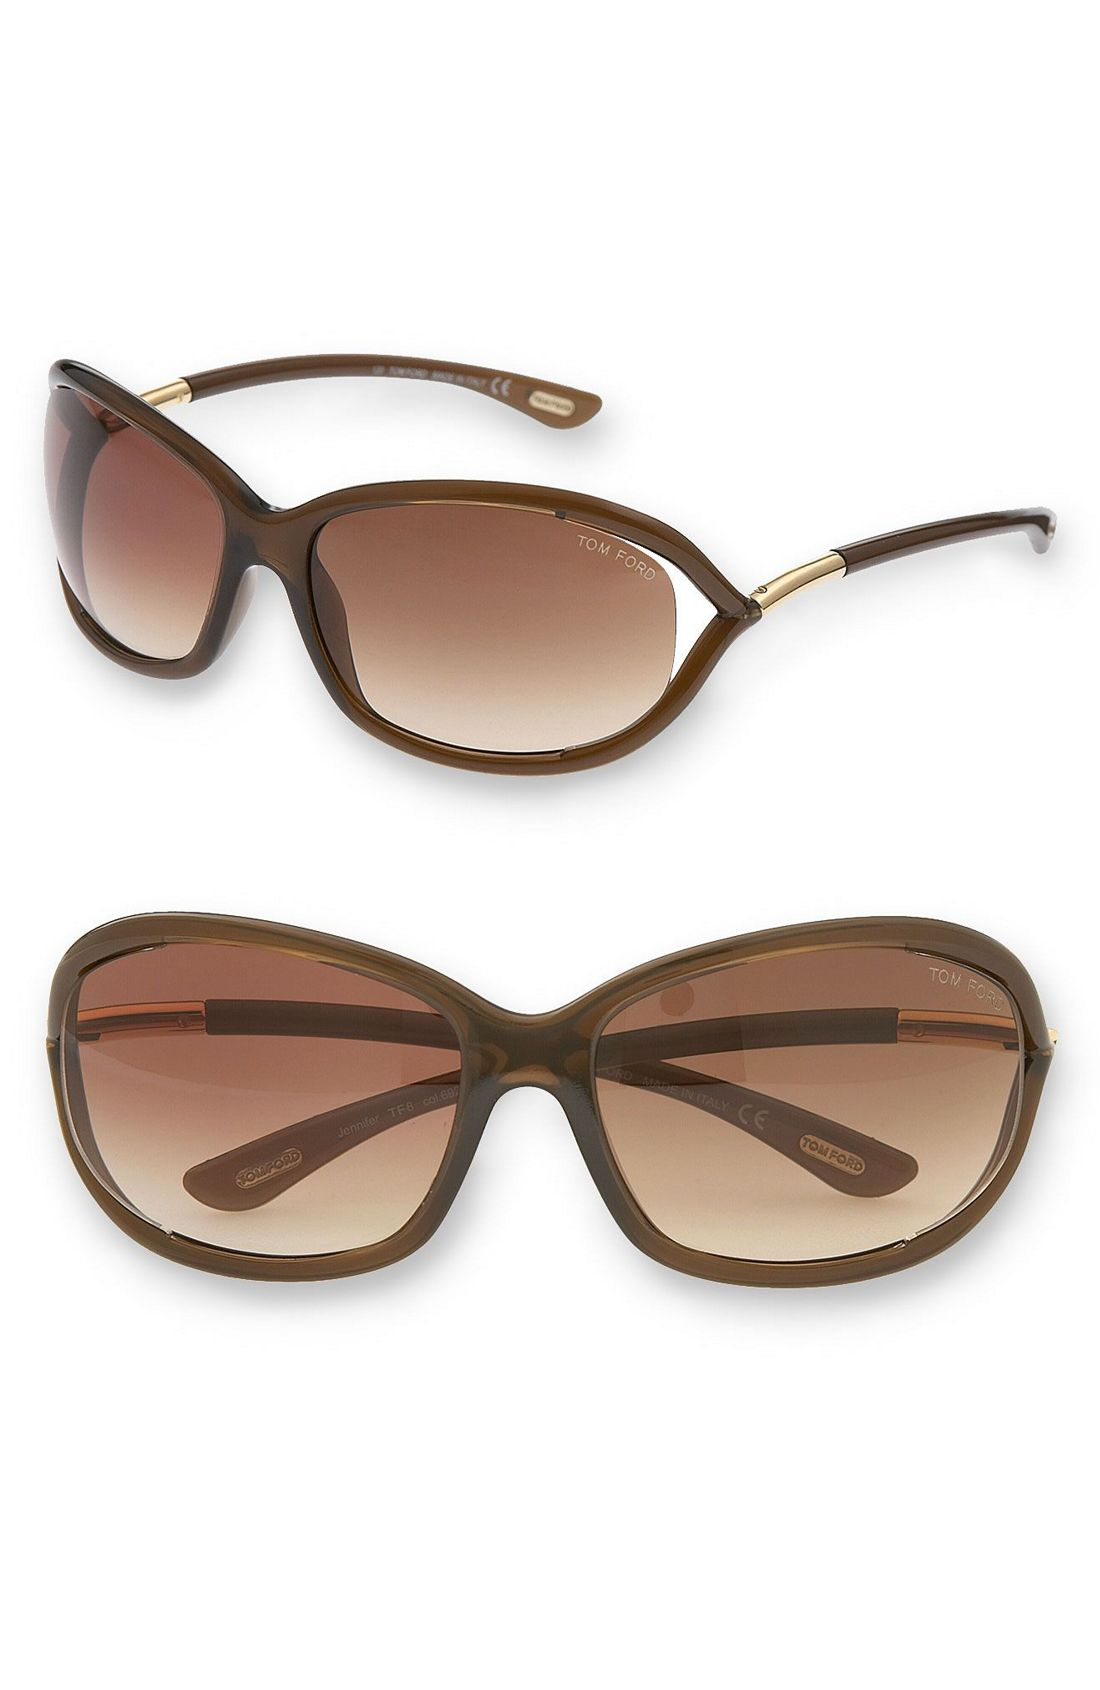 tom ford jennifer oval frame sunglasses in brown dark brown lyst. Cars Review. Best American Auto & Cars Review